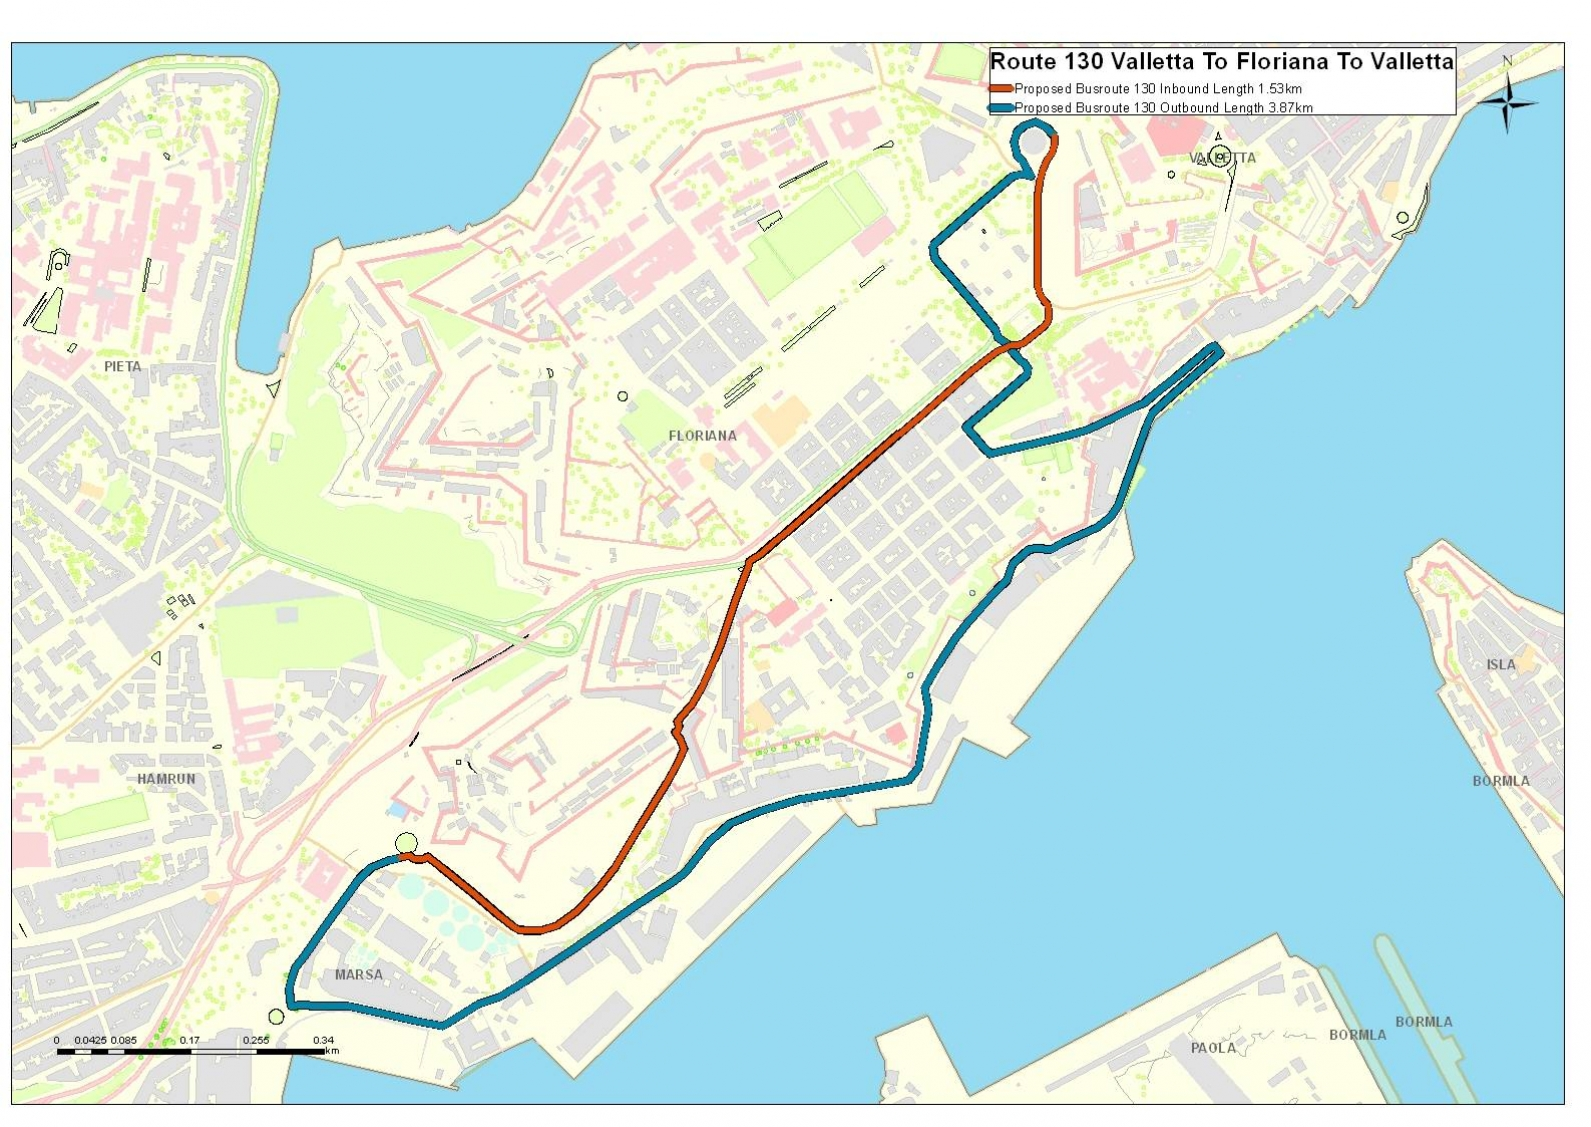 Land-current-network-routes-and-schedules-Valletta-Park-and-Ride-3